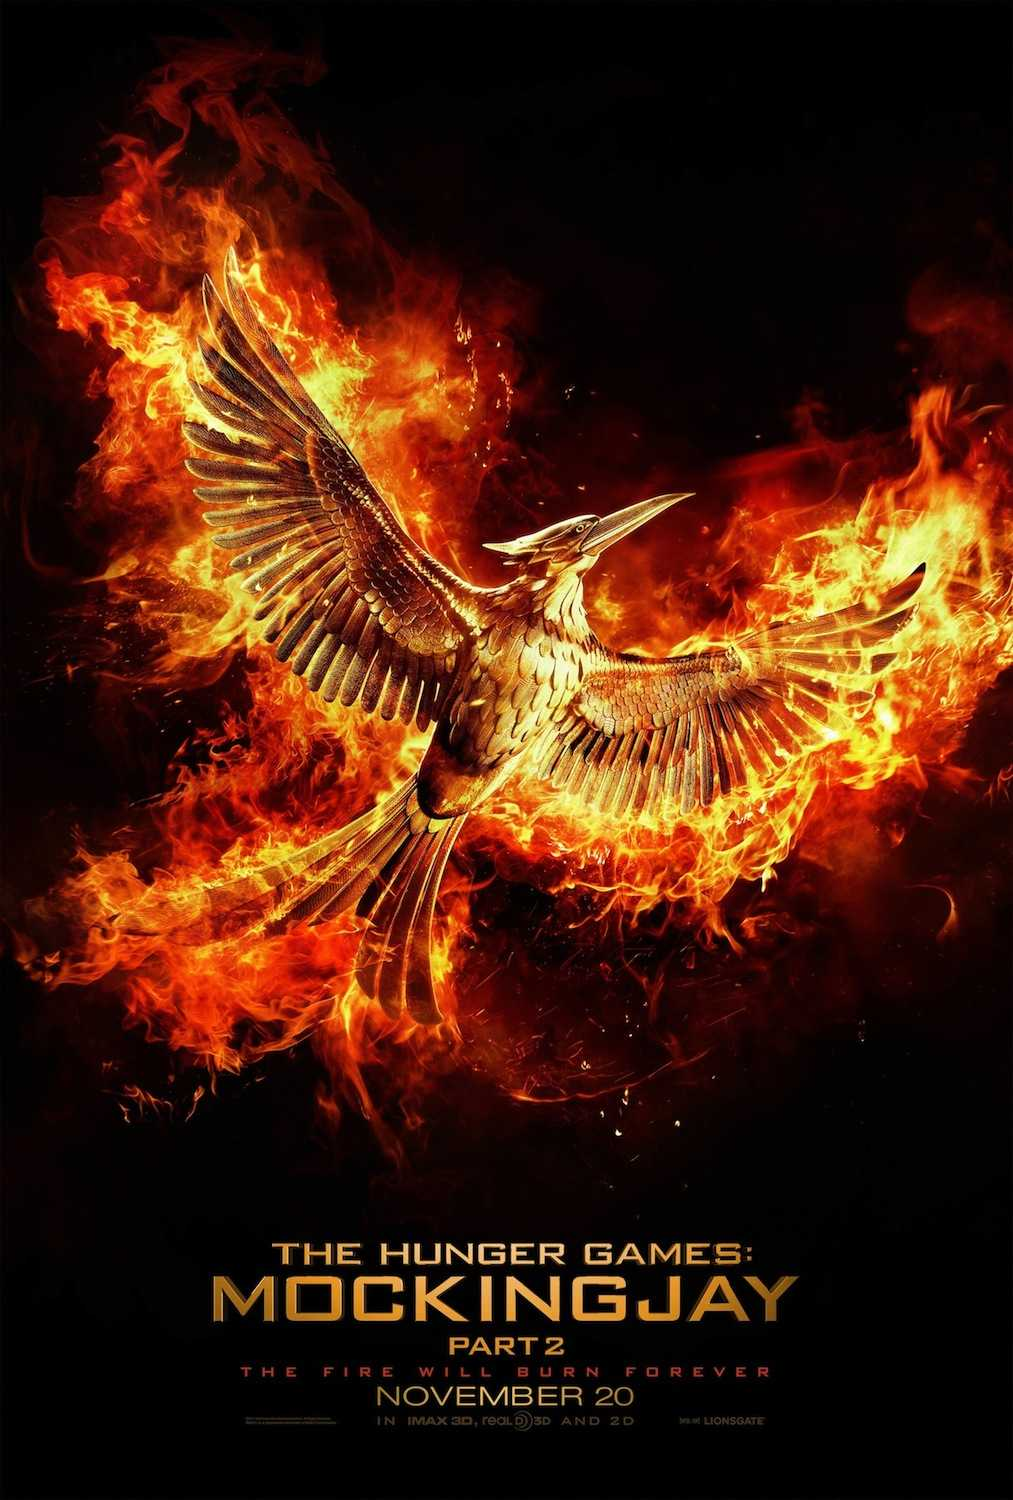 Loudinni Reviews: The Hunger Games: Mockingjay Part 2 | Mockingjay Part 2